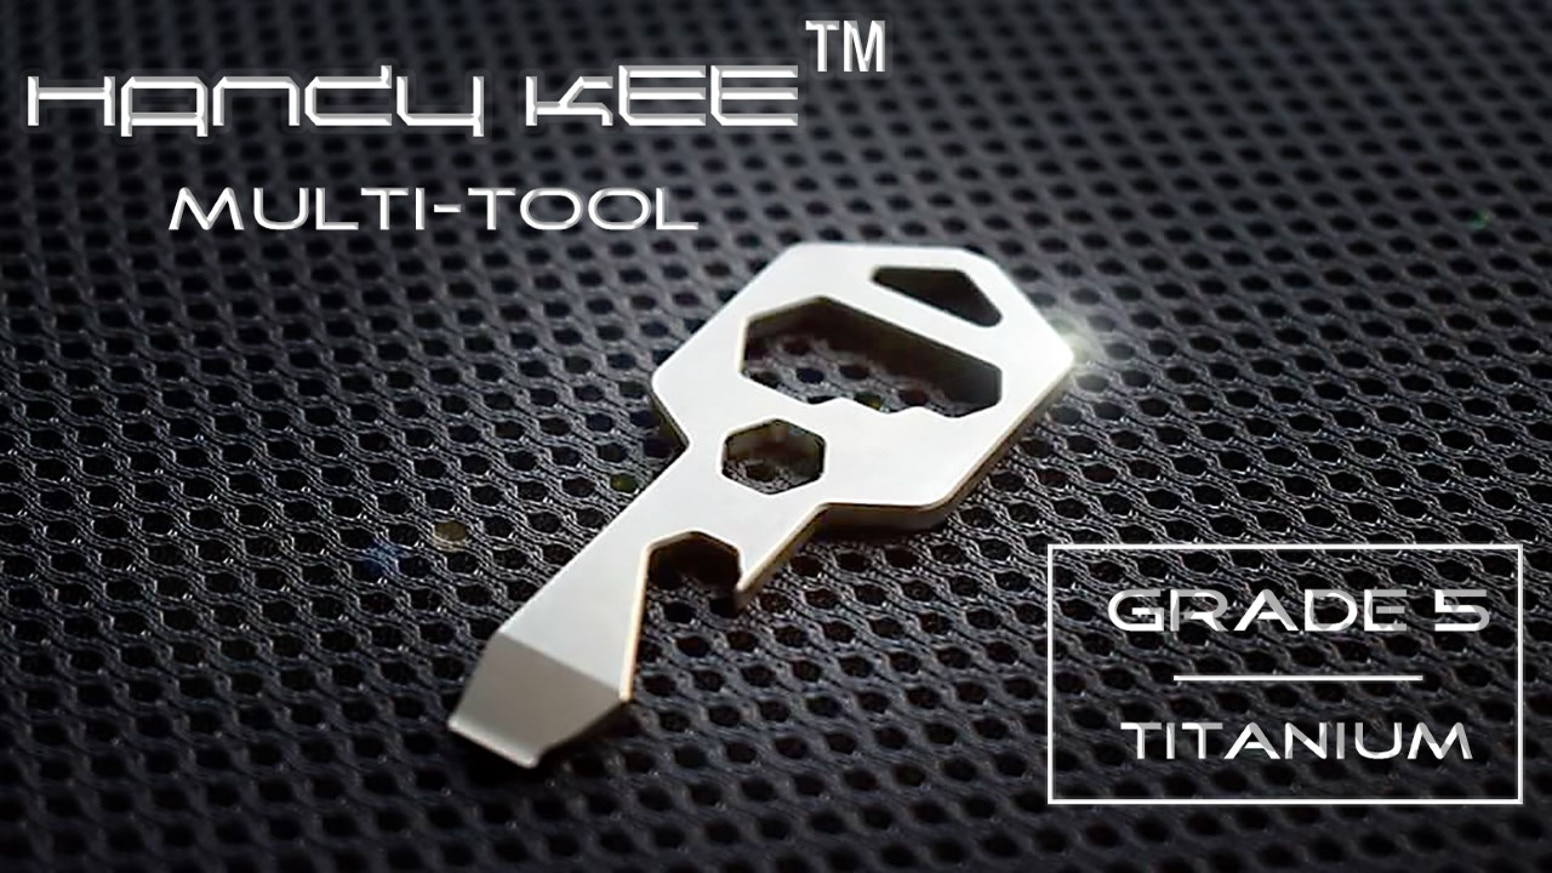 A perfect key shaped multi-tool with 18+ useful functions. It's made with Grade 5 Titanium. Durable, lightweight and extremely handy.